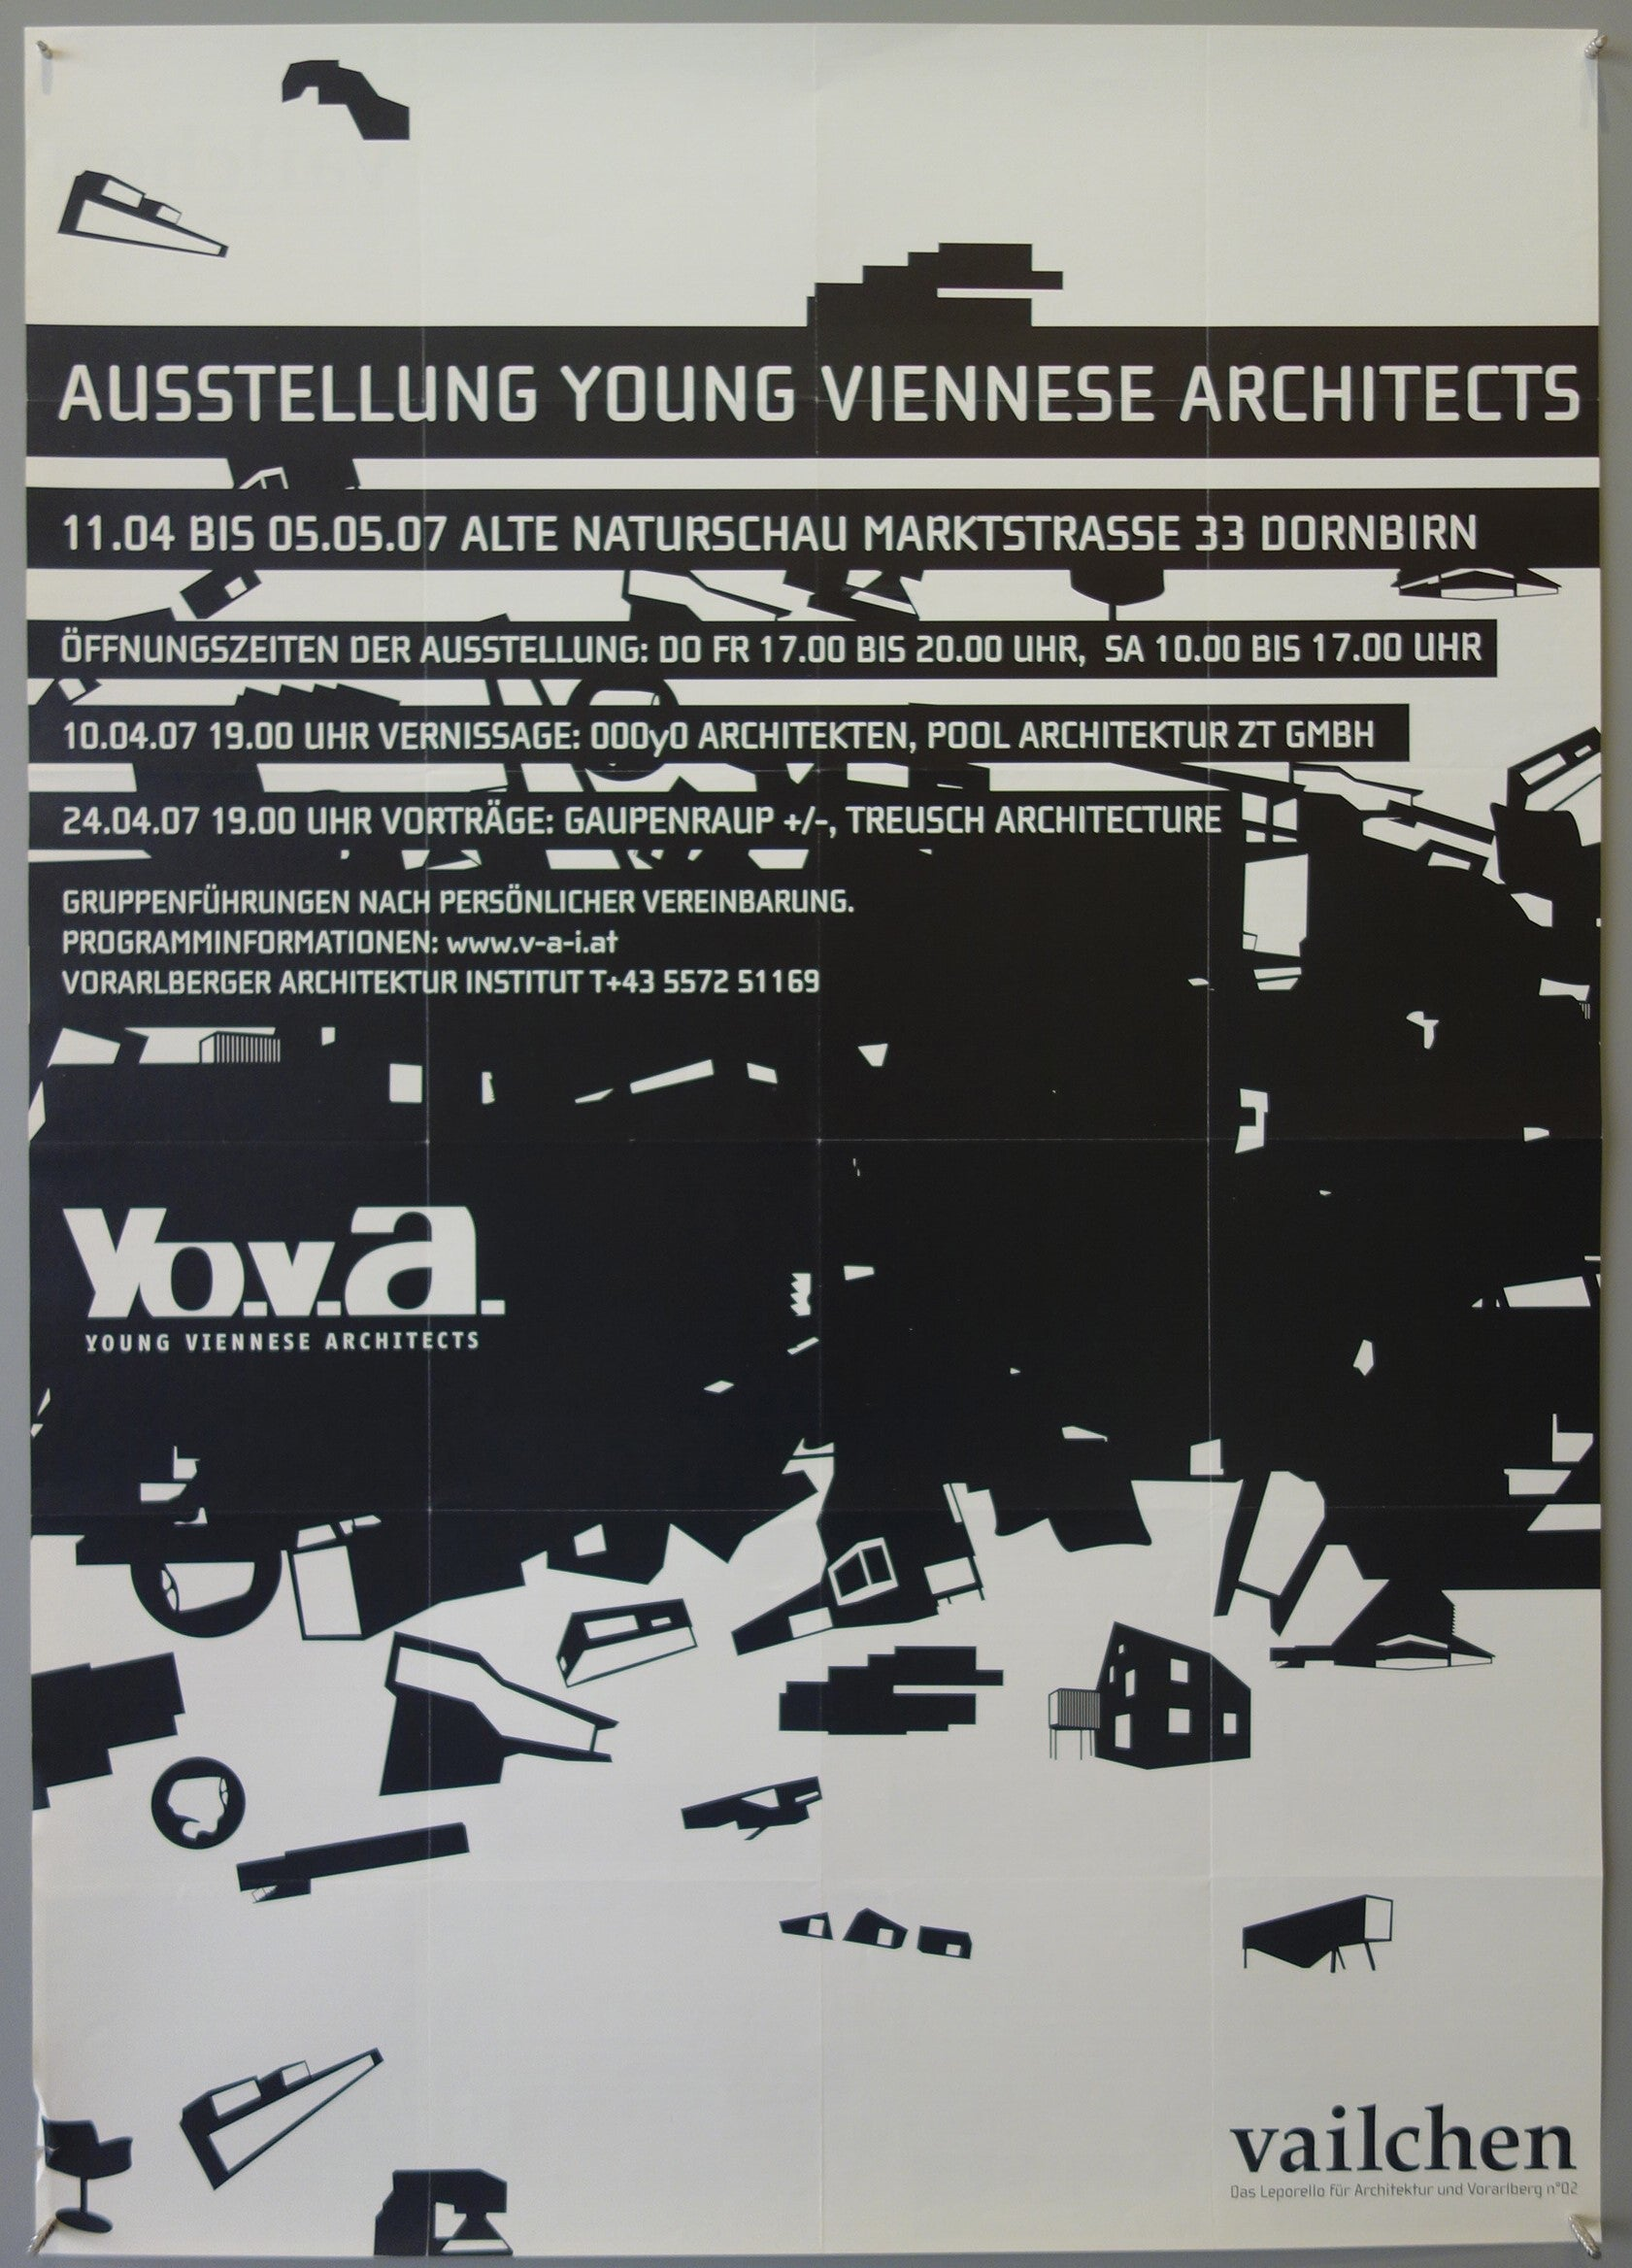 Ausstellung Young Viennese Architects